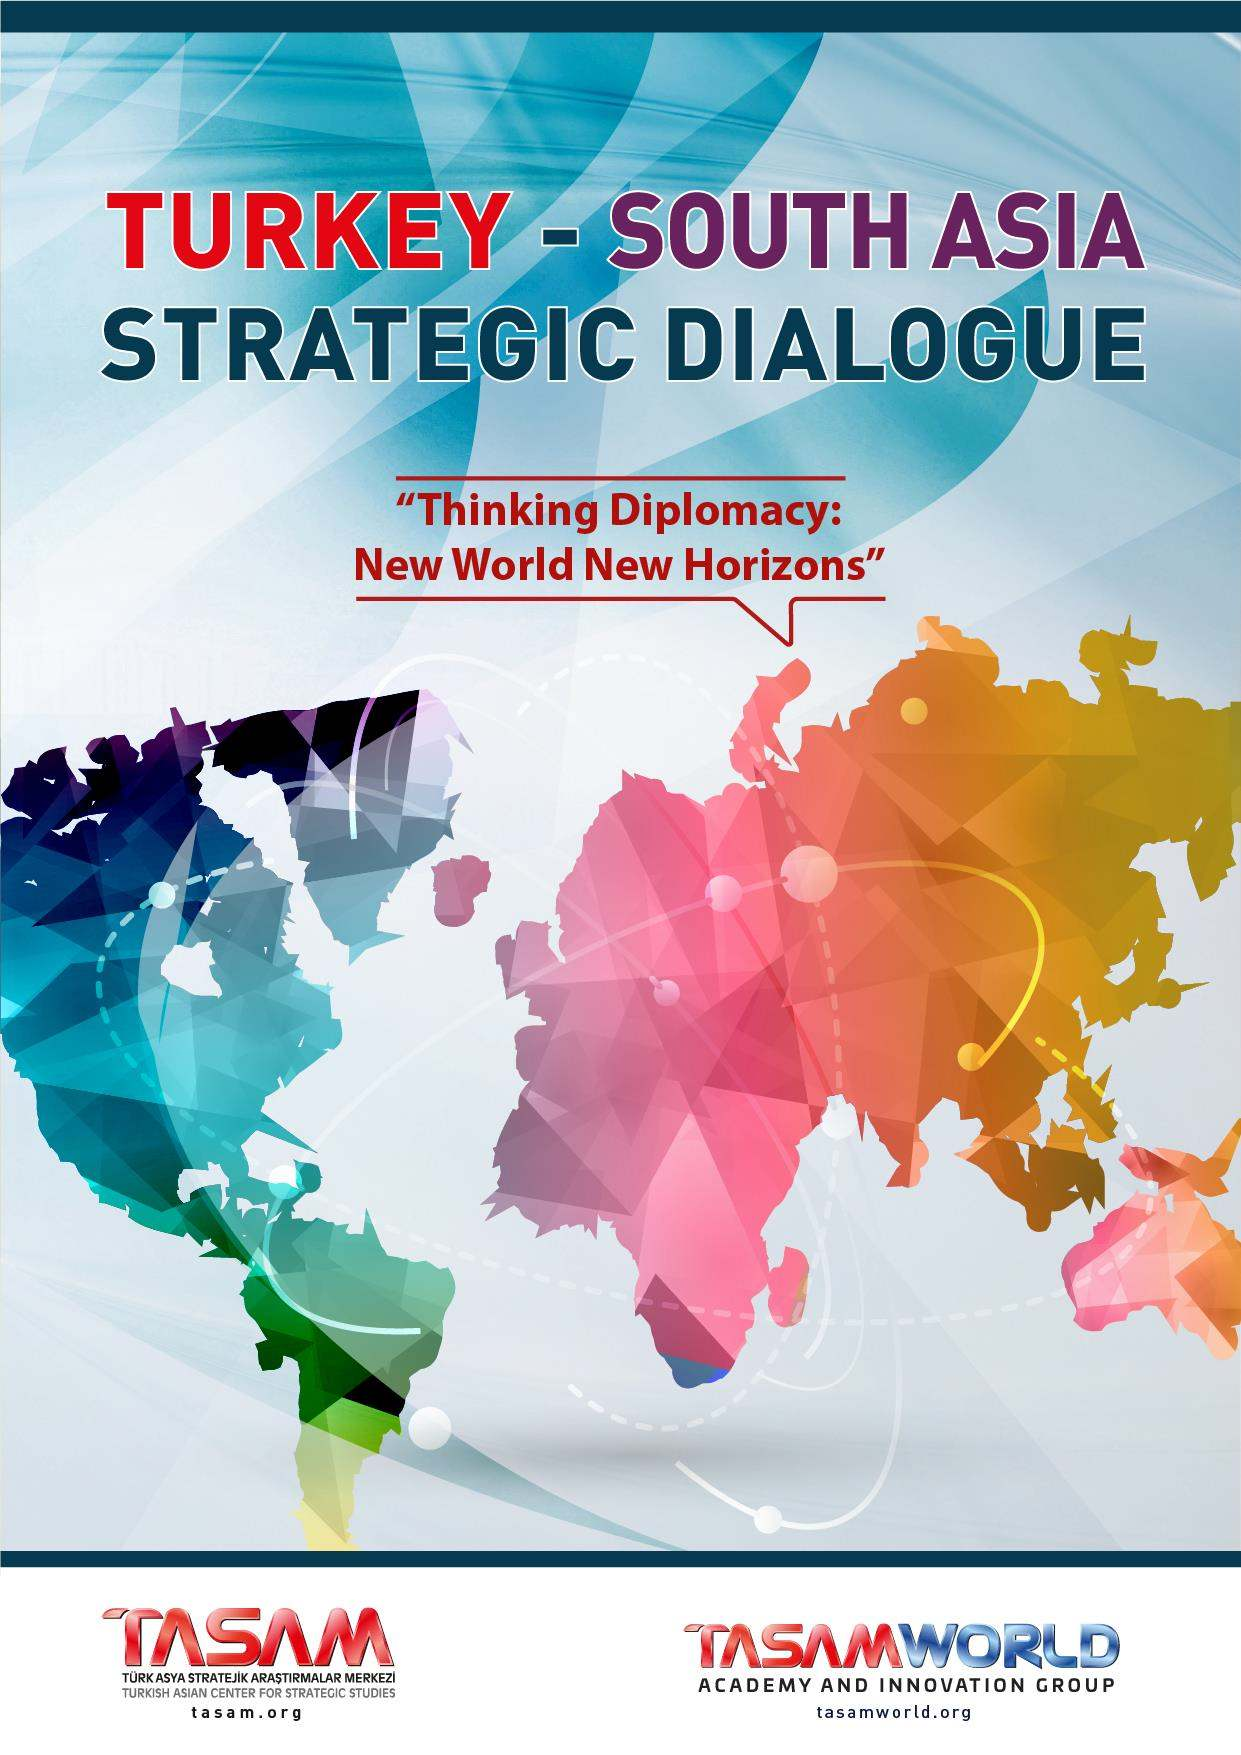 Turkey - Souh Asia Strategic Dialogue